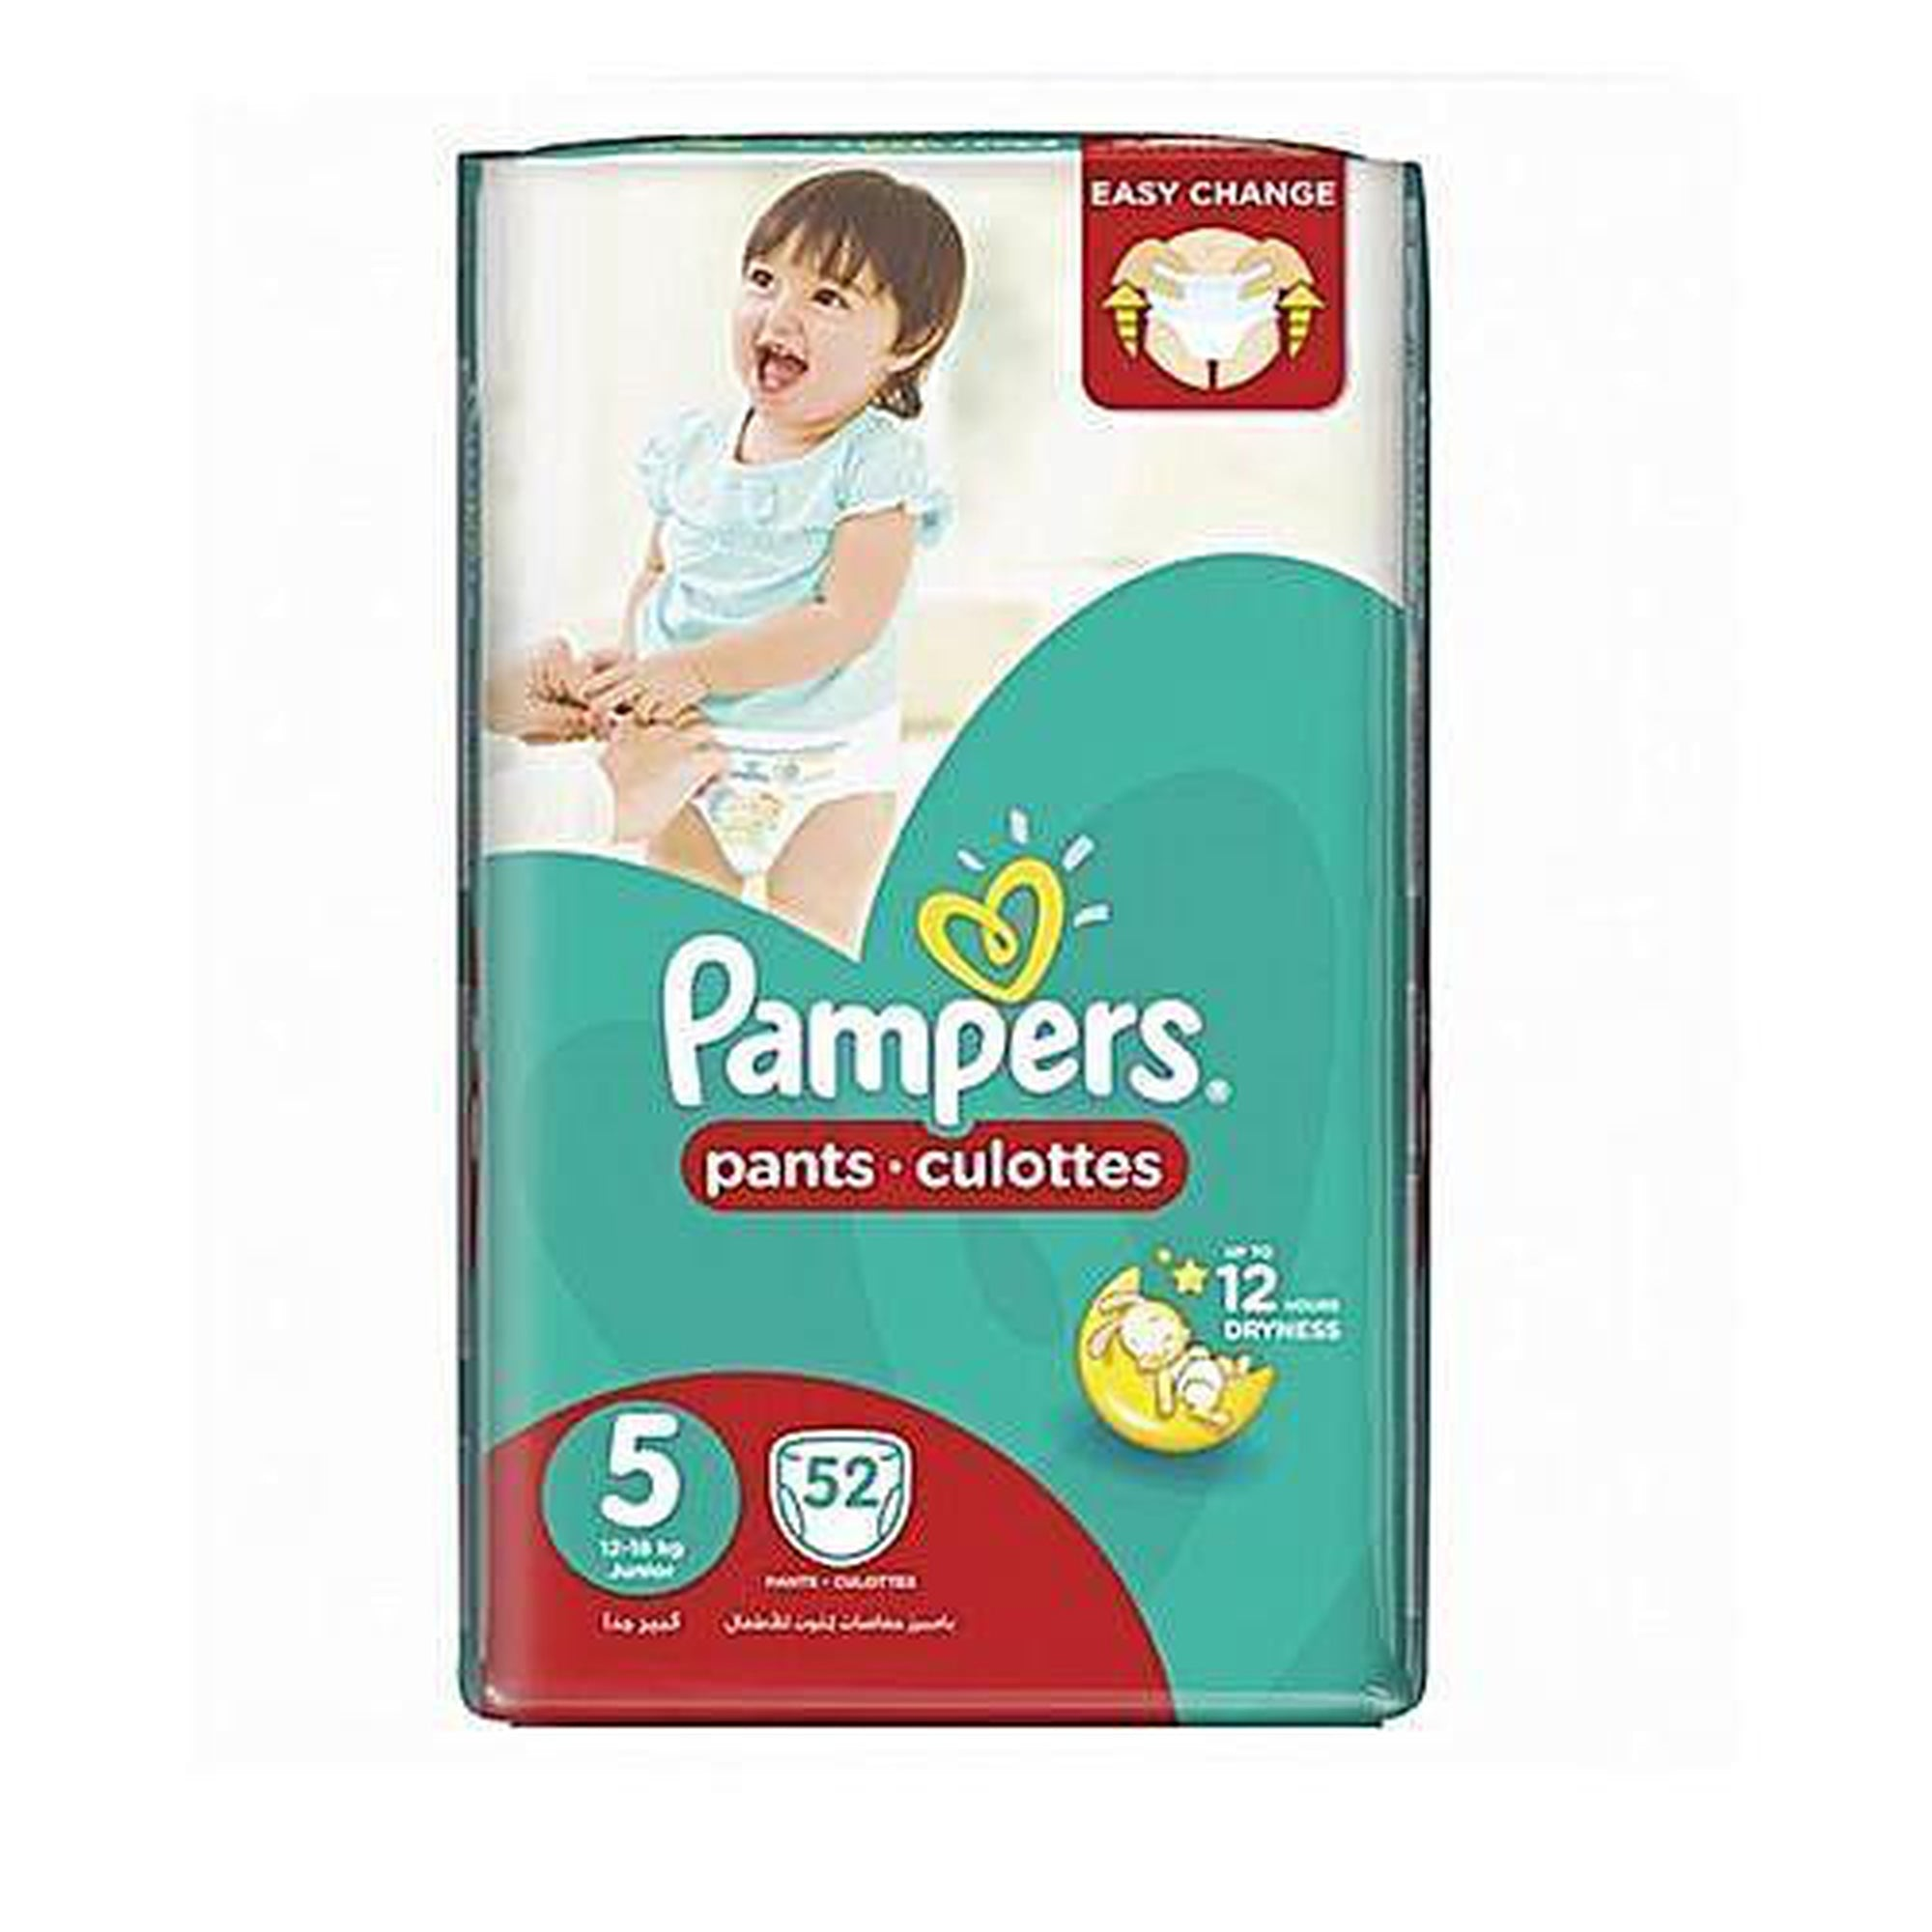 Pamper Pants Size 5 ( 12-18kgs) (52pc)-Diapers-Mother and Baby Shop Kenya's #1 Online Baby Shop